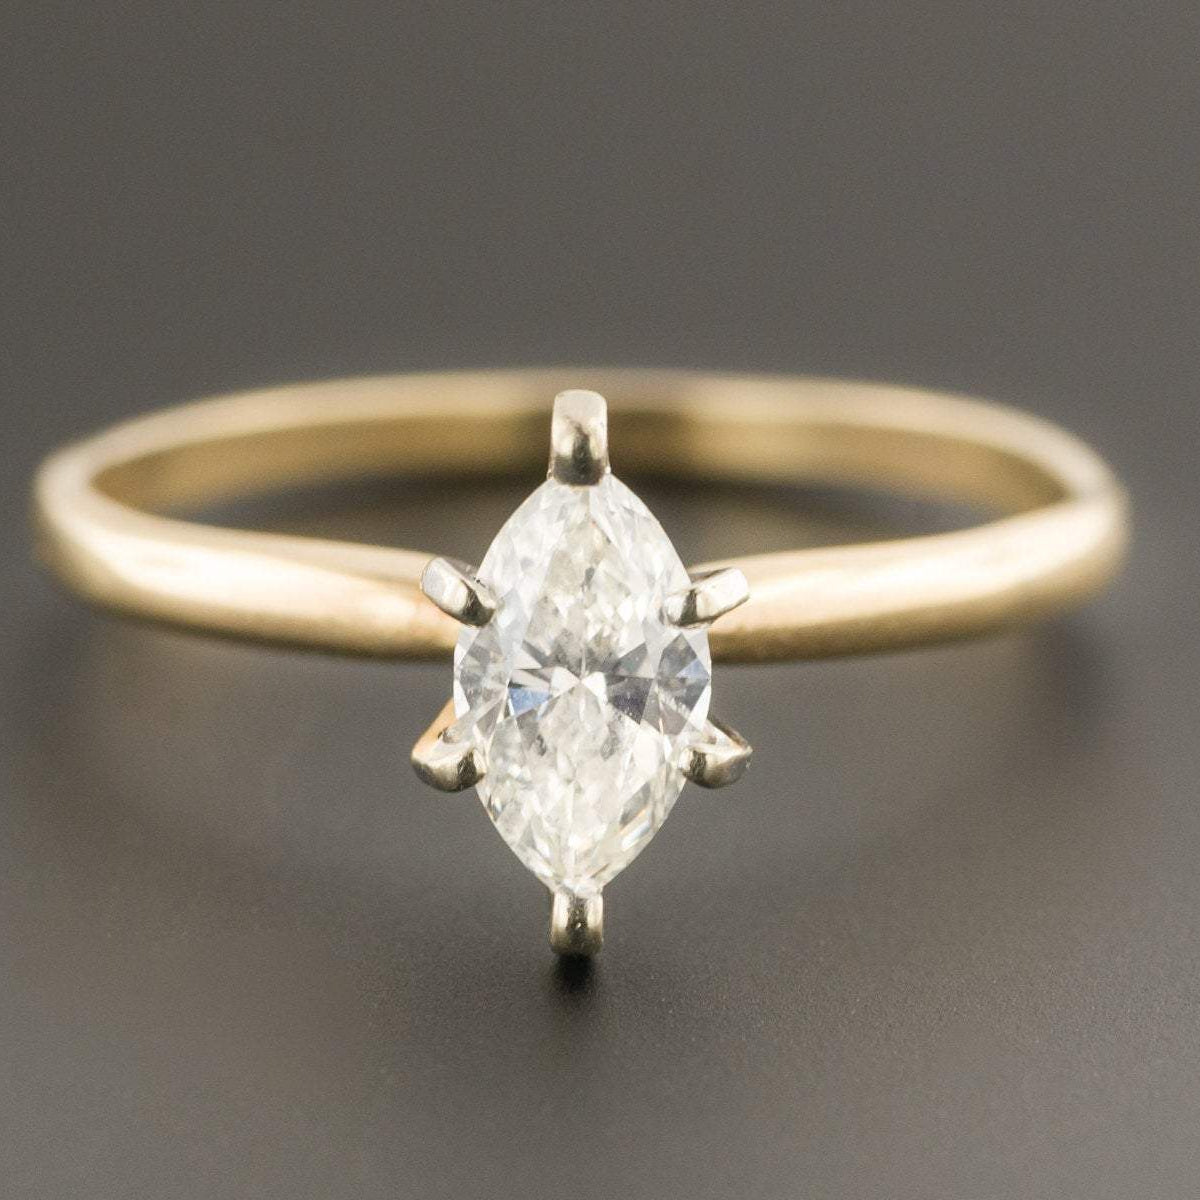 Marquise Cut Diamond Ring | Diamond Engagement Ring | 14k Gold Ring | Diamond Solitaire